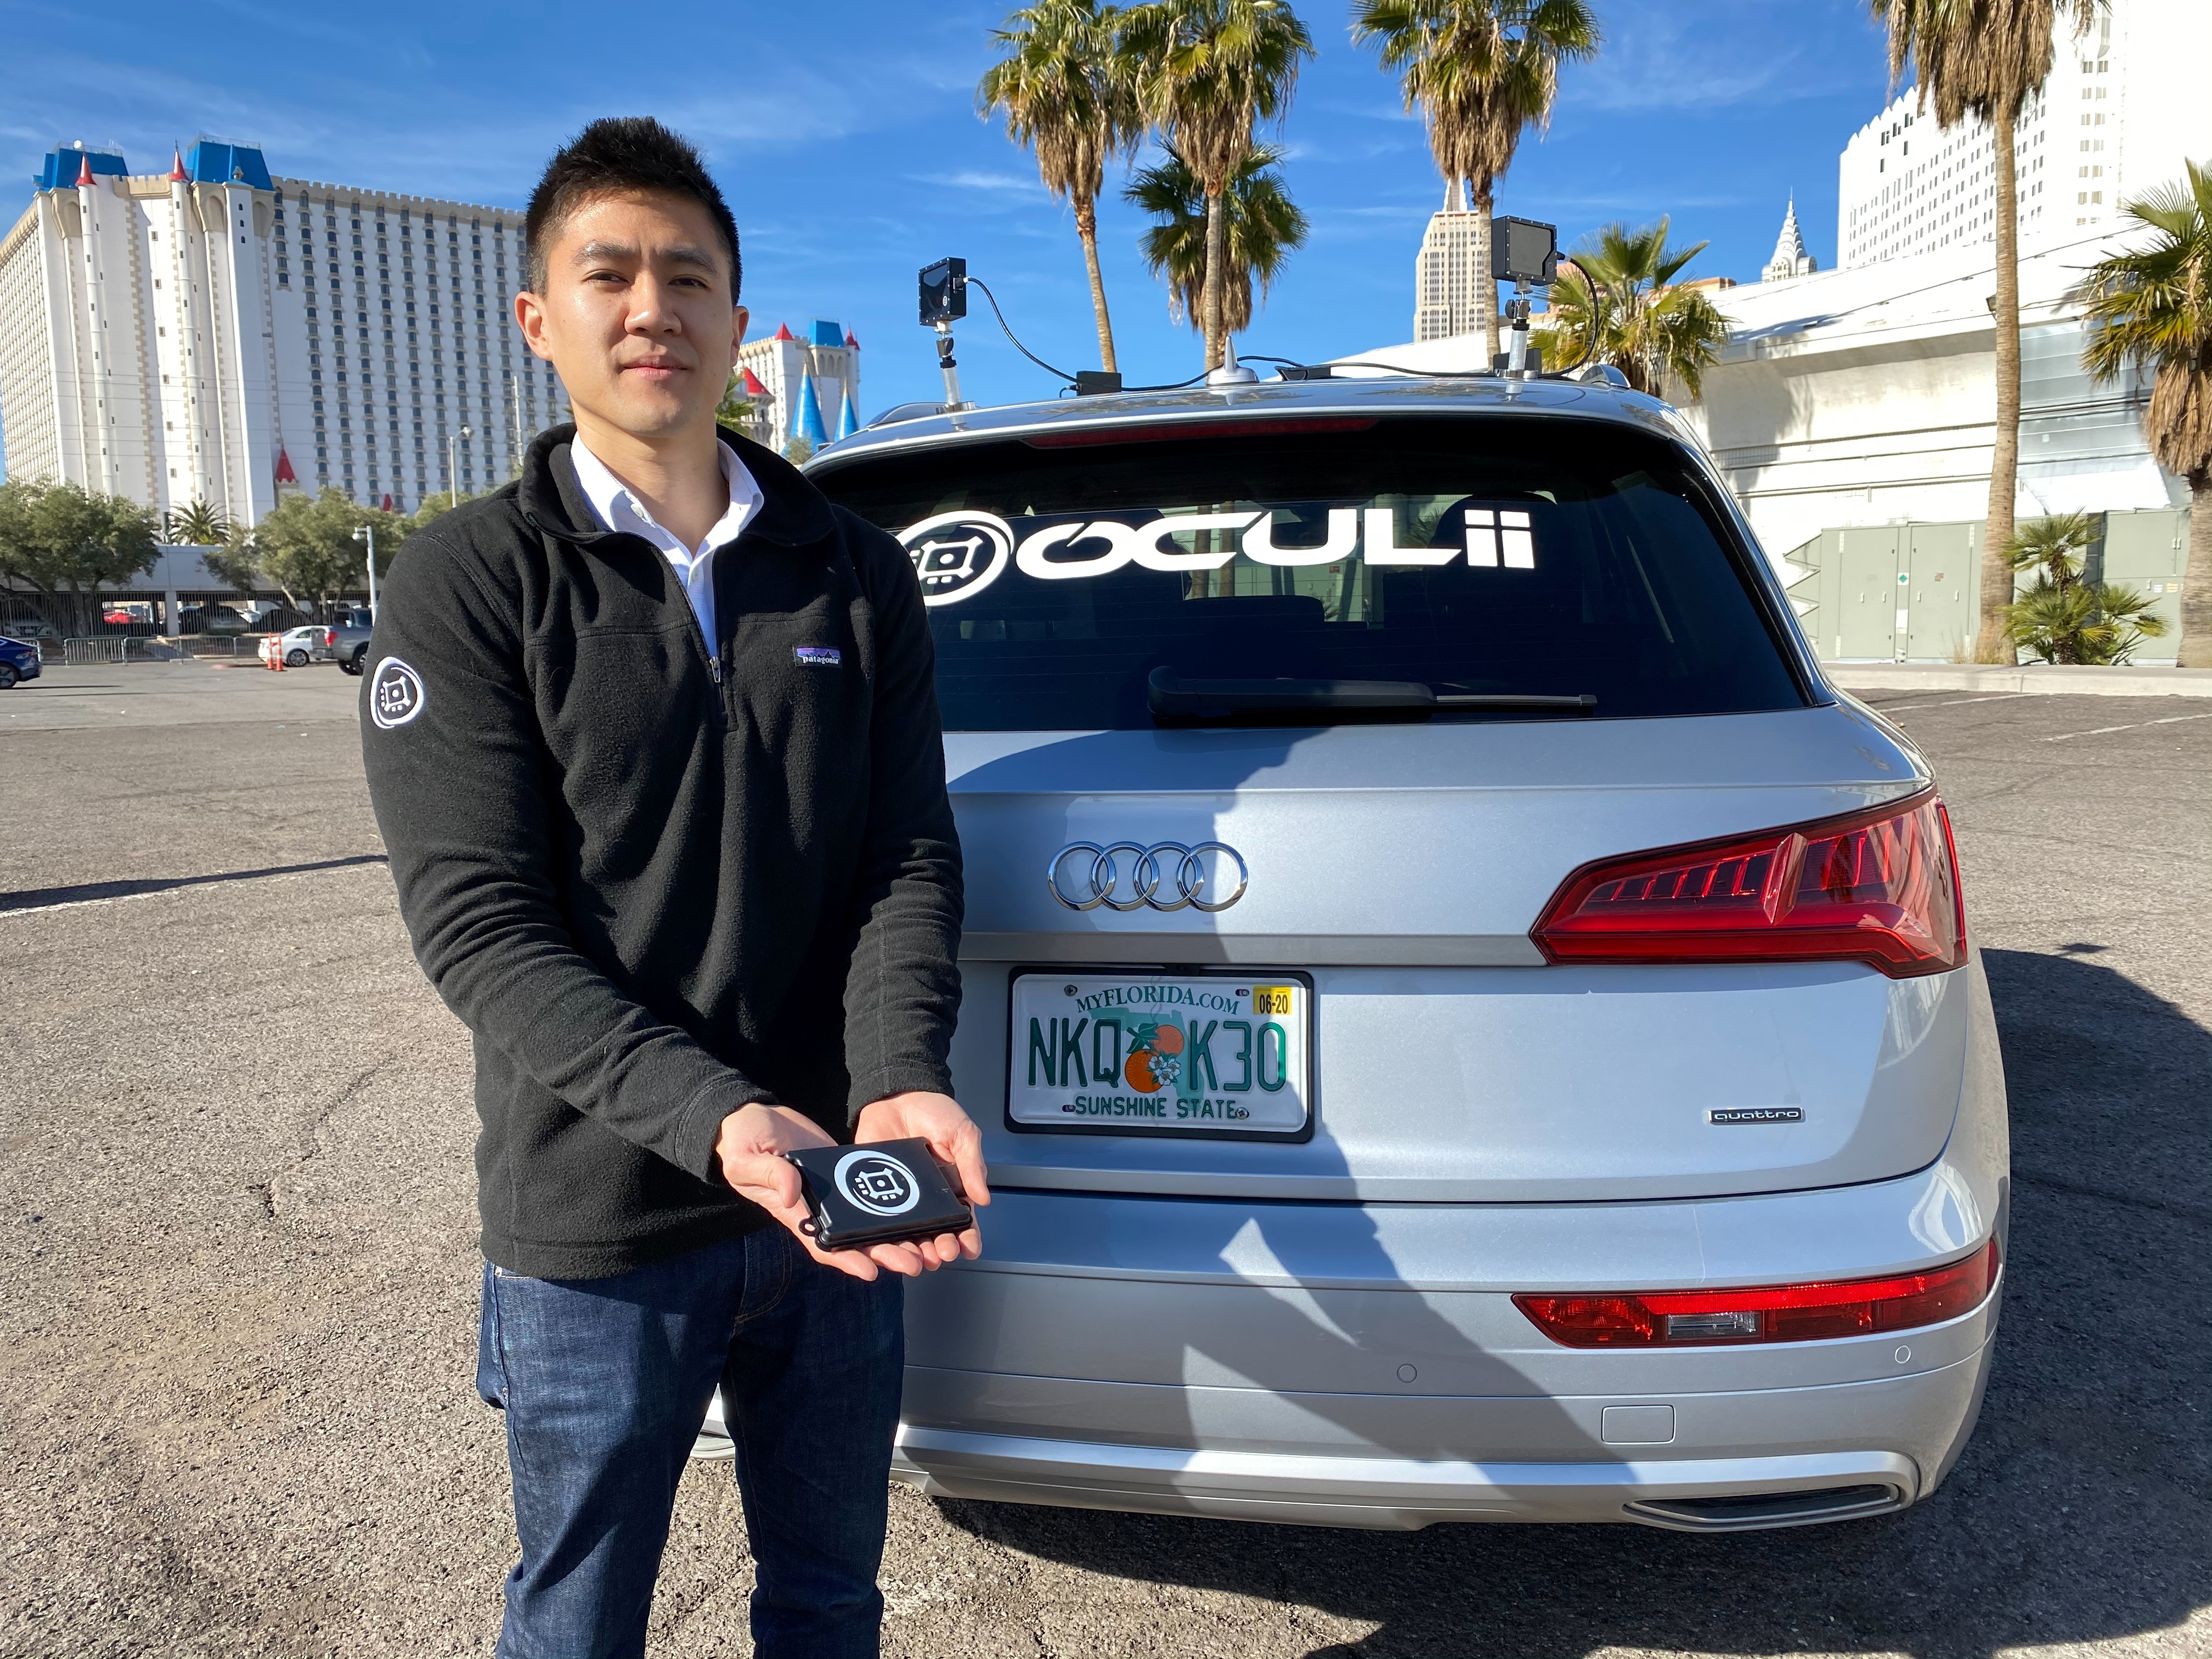 Oculii CEO Steven Hong shows the company's radar kit at the CES tech show in Las Vegas, Nevada, U.S. January 5, 2020. Oculii's AI software helps boost the resolution of radars so it can be used in self-driving cars. Picture taken January 5, 2020.  REUTERS/Jane Lanhee Lee